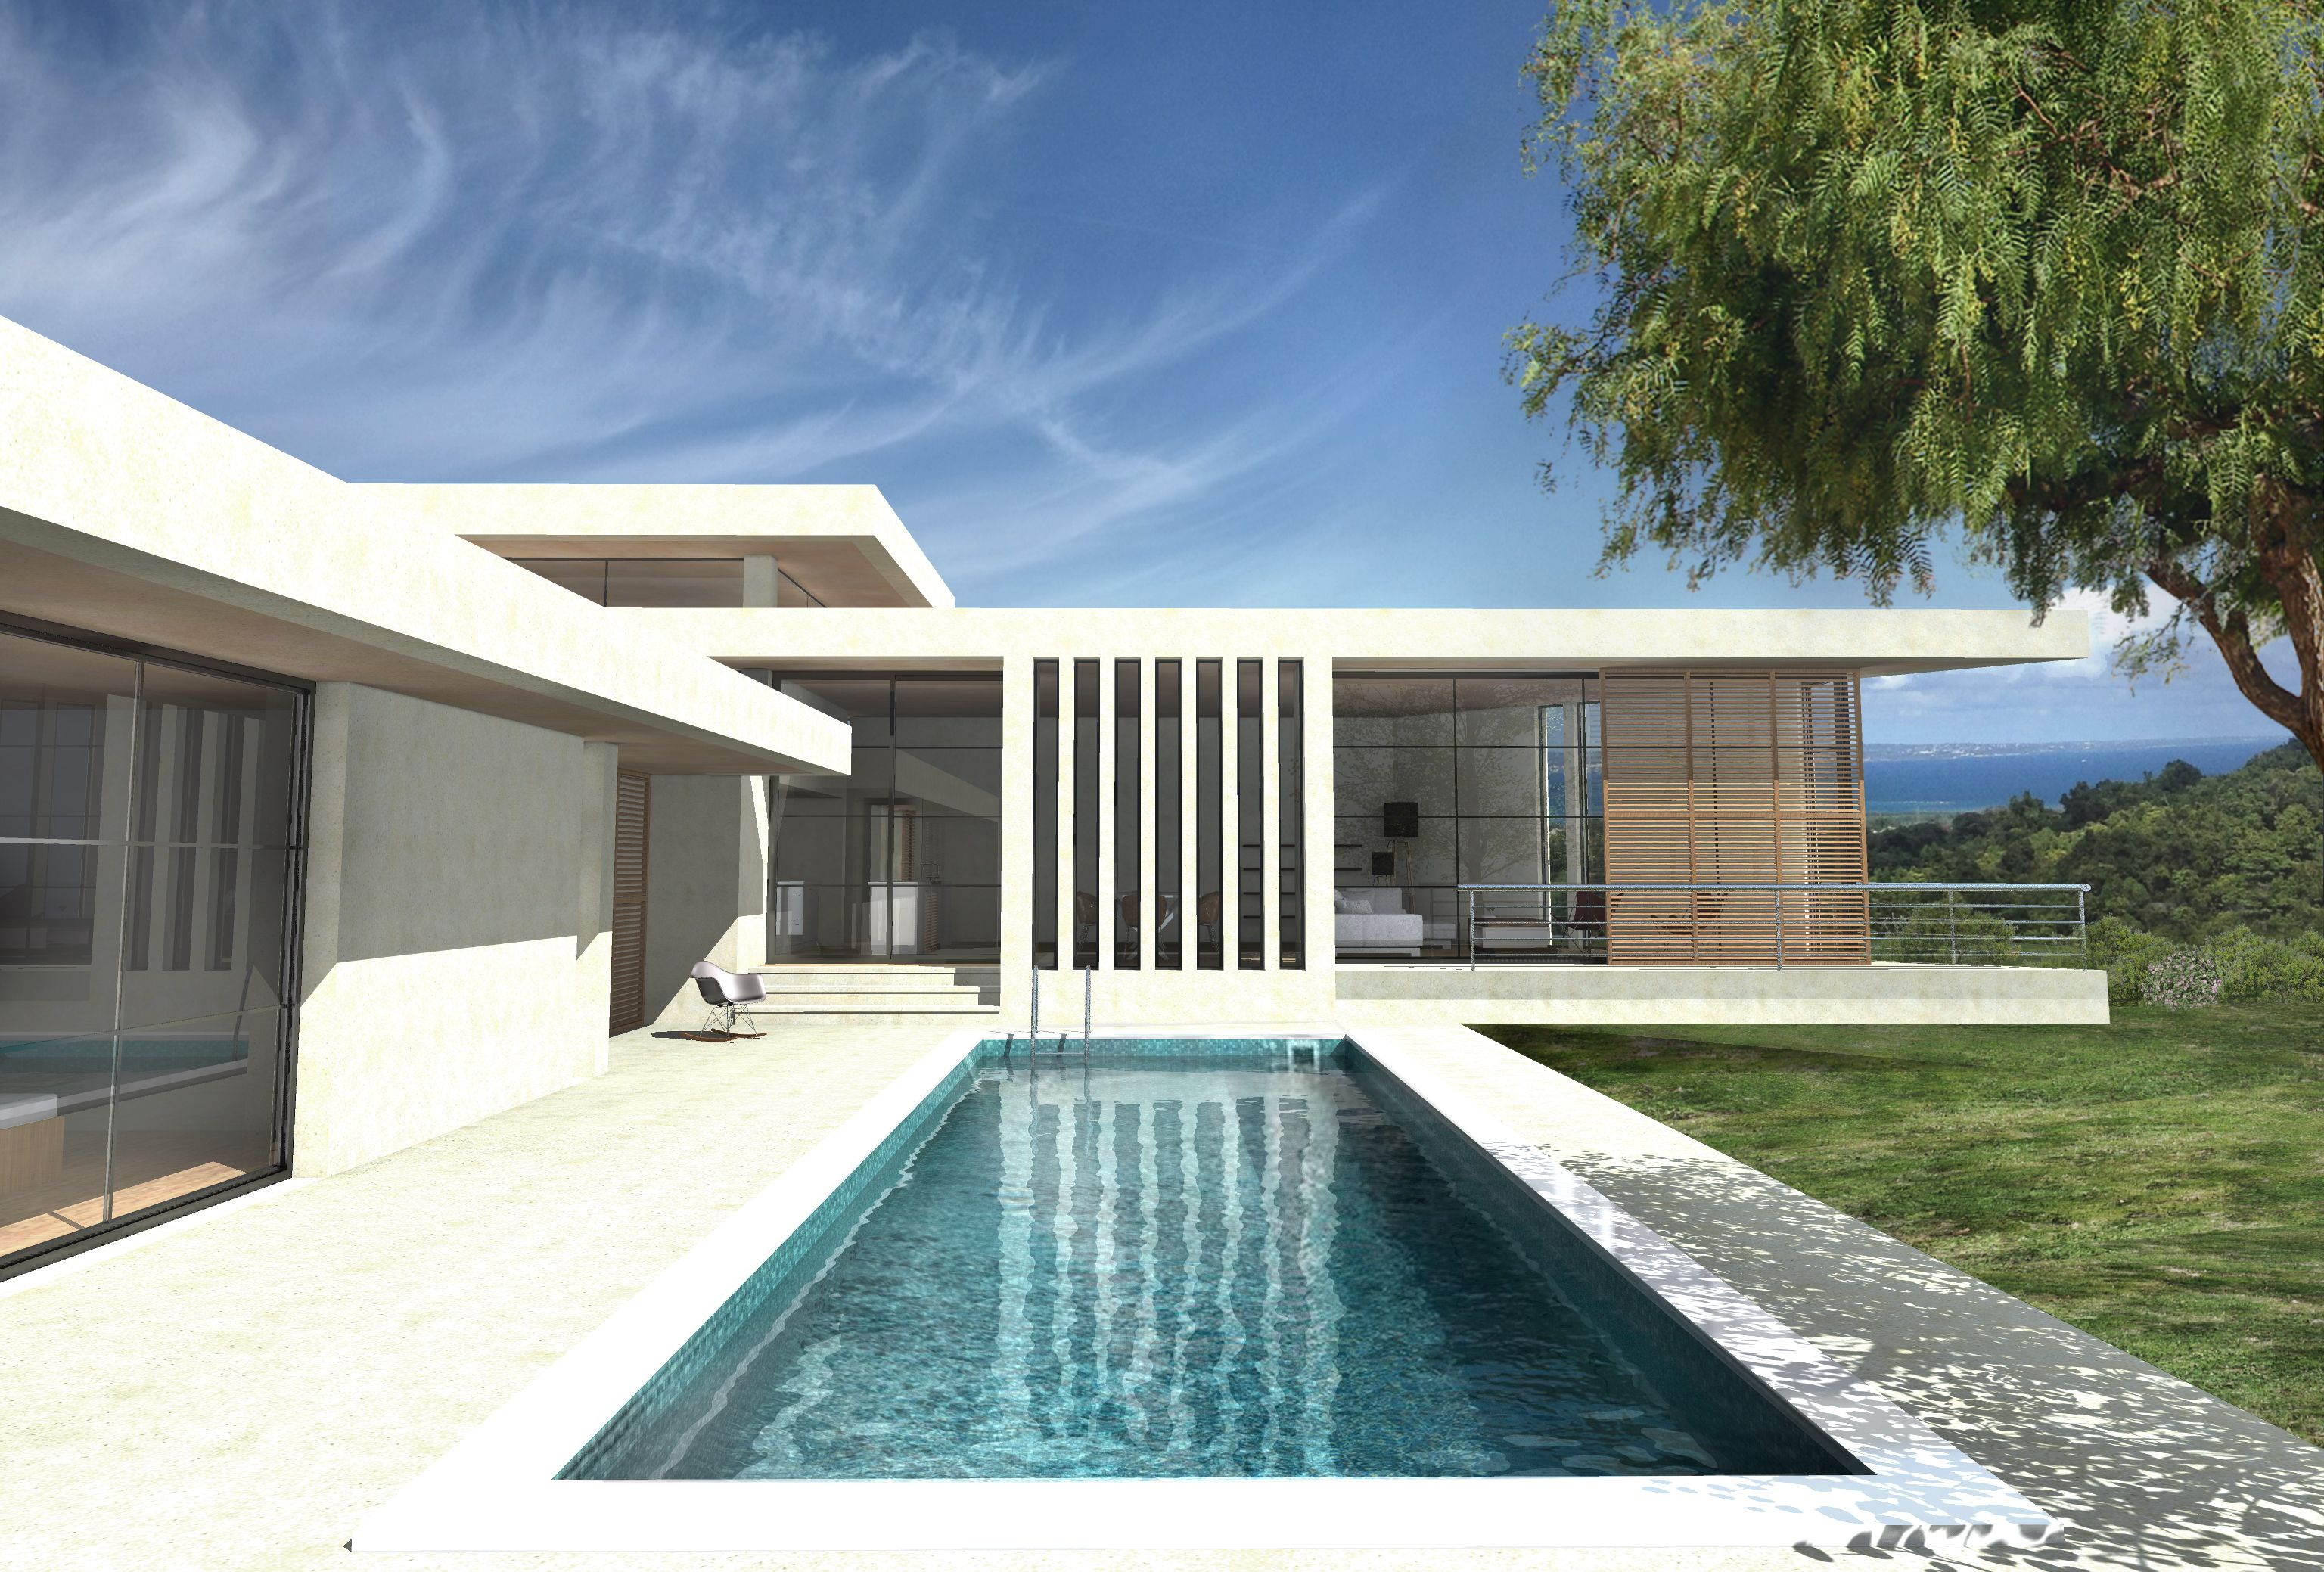 Maison de r ve contemporaine de plain pied r alis e par for Plan d architecture villa moderne